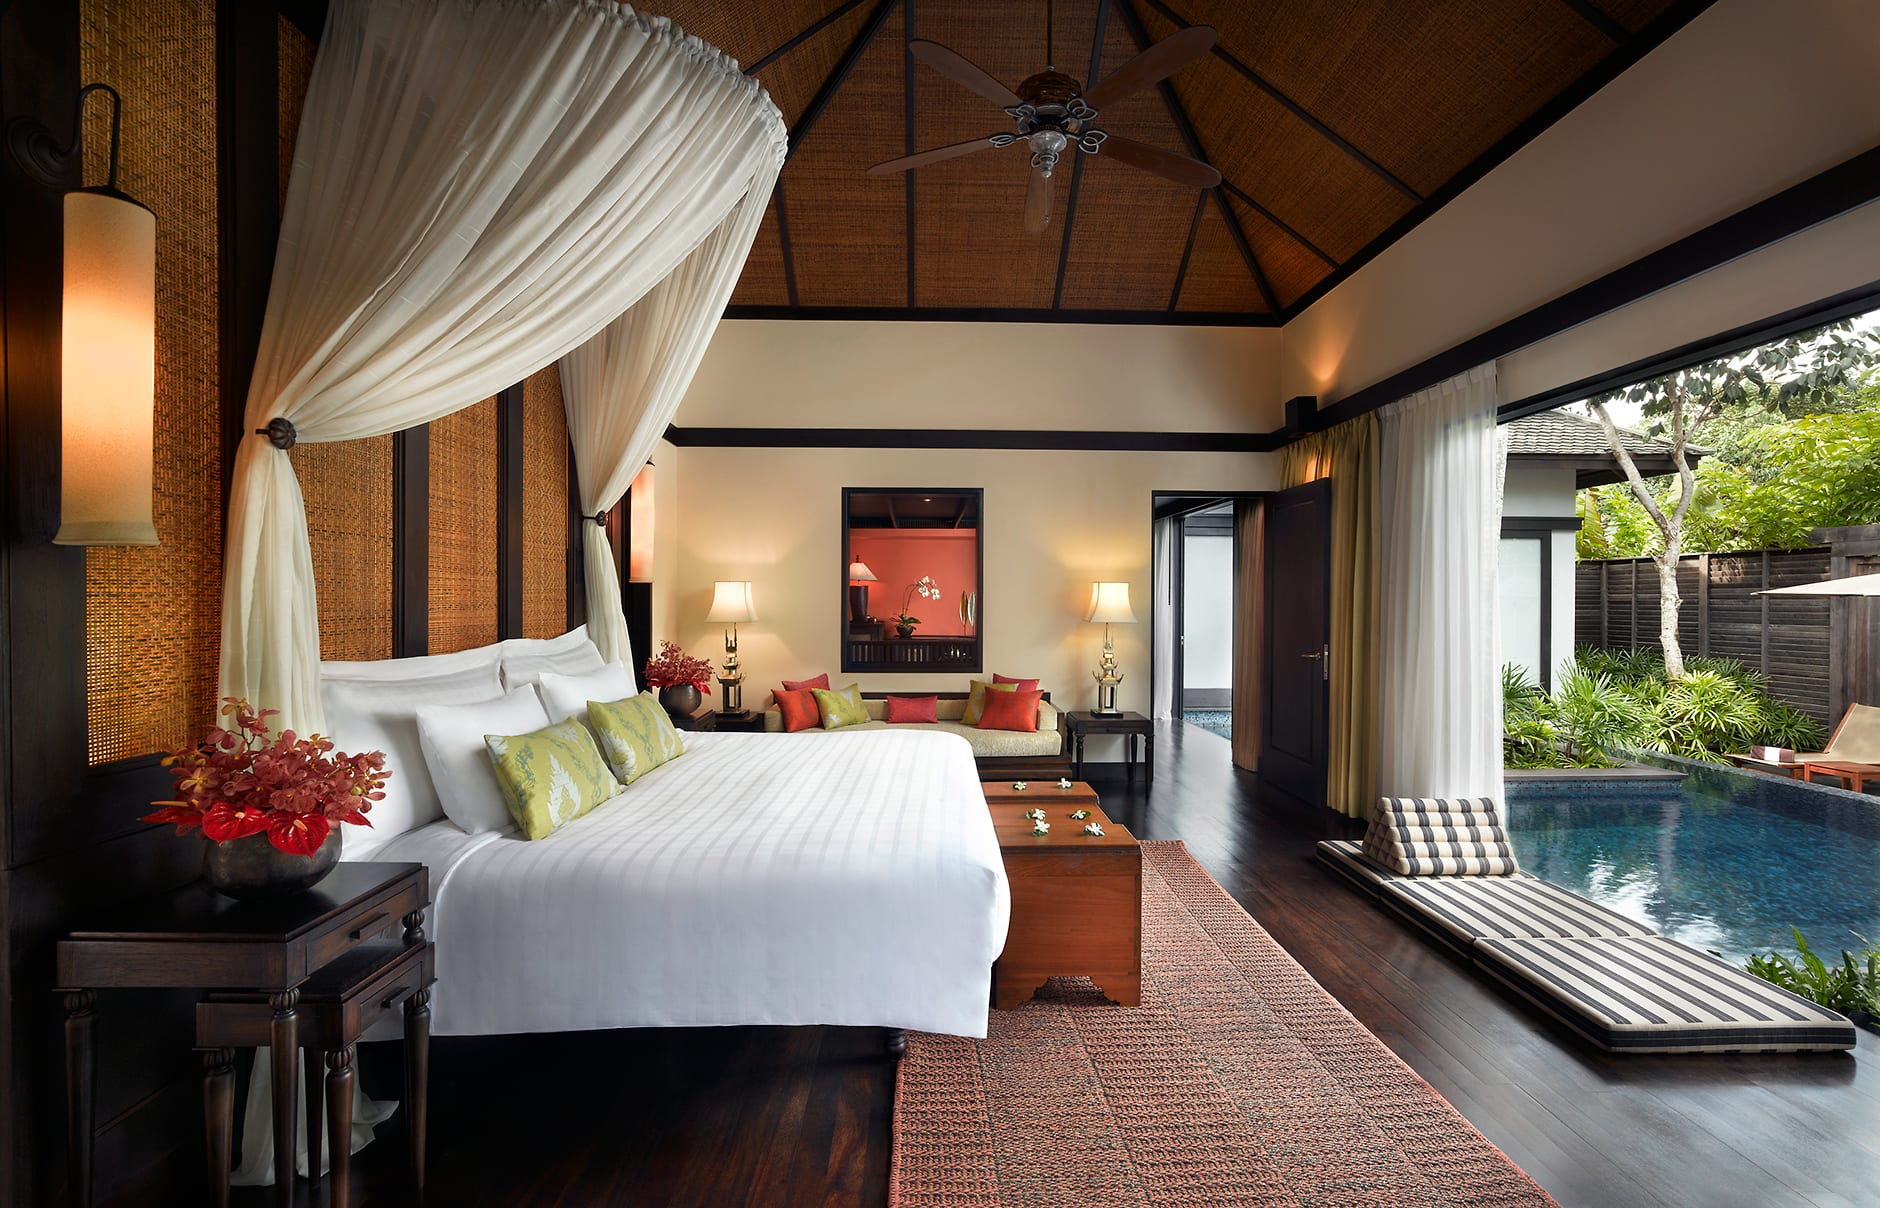 Two Bedroom Royal Villa master bedroom. Anantara Phuket Villas, Thailand. © Anantara Hotels, Resorts & Spa